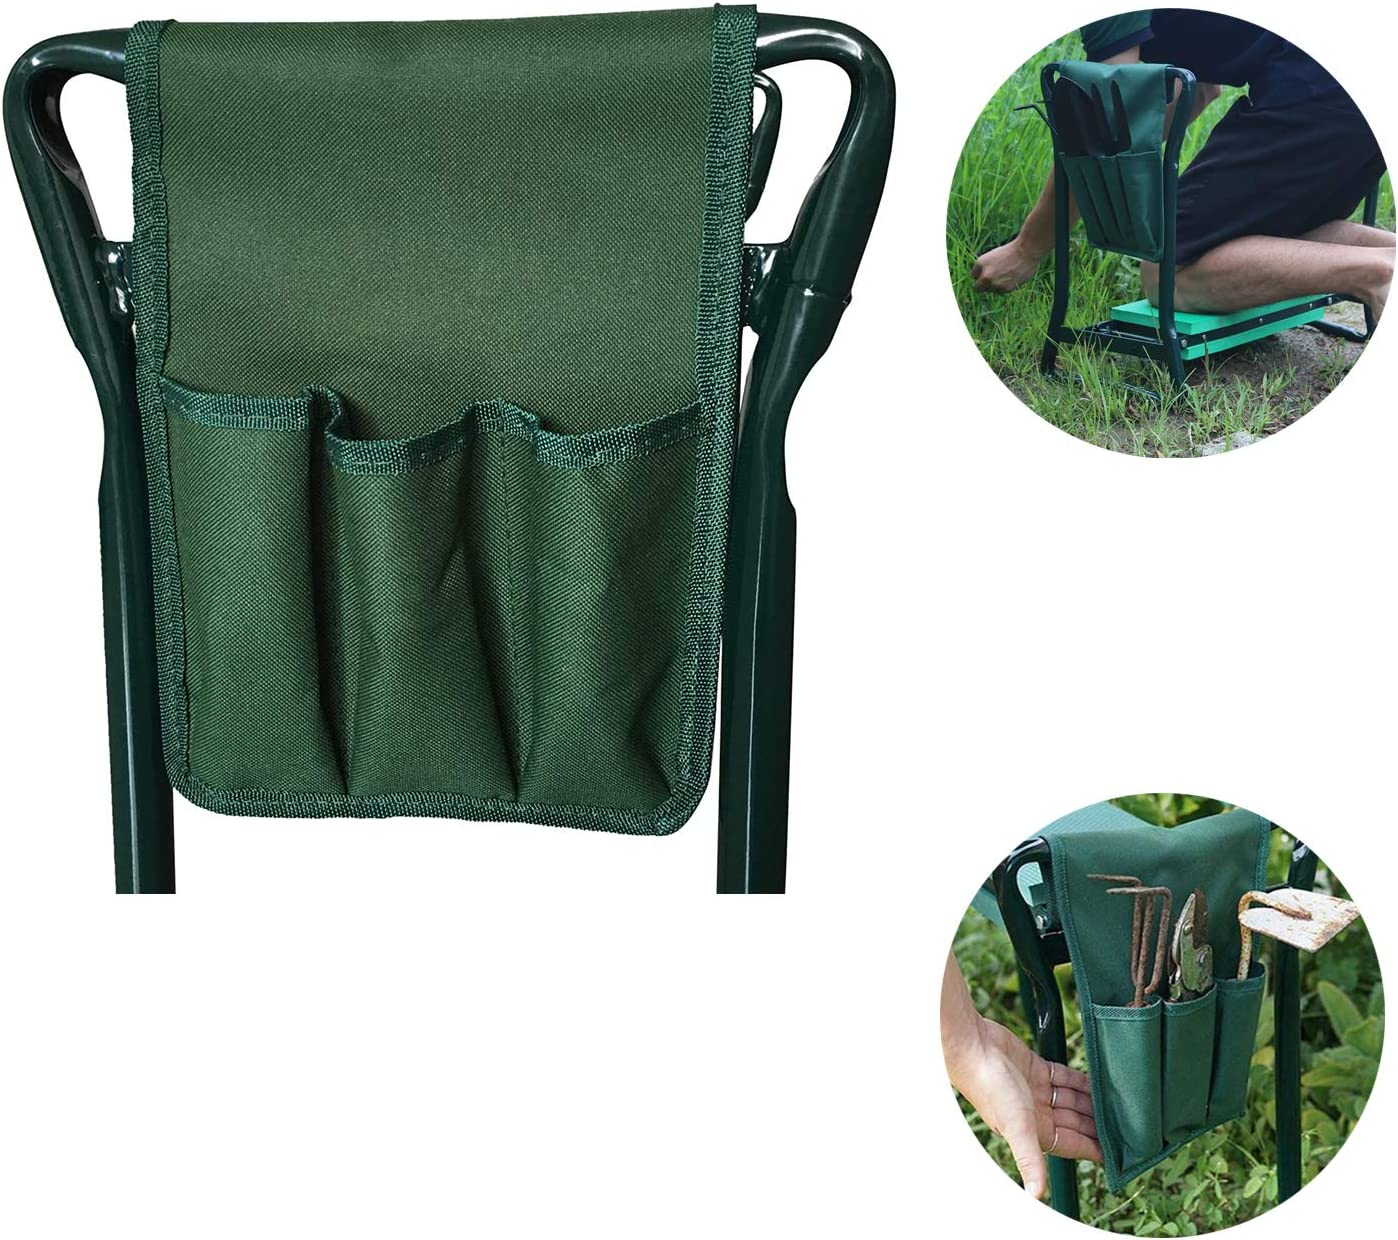 Garden Kneeler and Seat Bags with Tool Pouches Portable for Outdoor Gardening Green Garden Kneeler Tool Bag Oxford Garden Kneeler Side Pockets for Kneeling Chair Garden Tools 11.6 x 7.7 inches